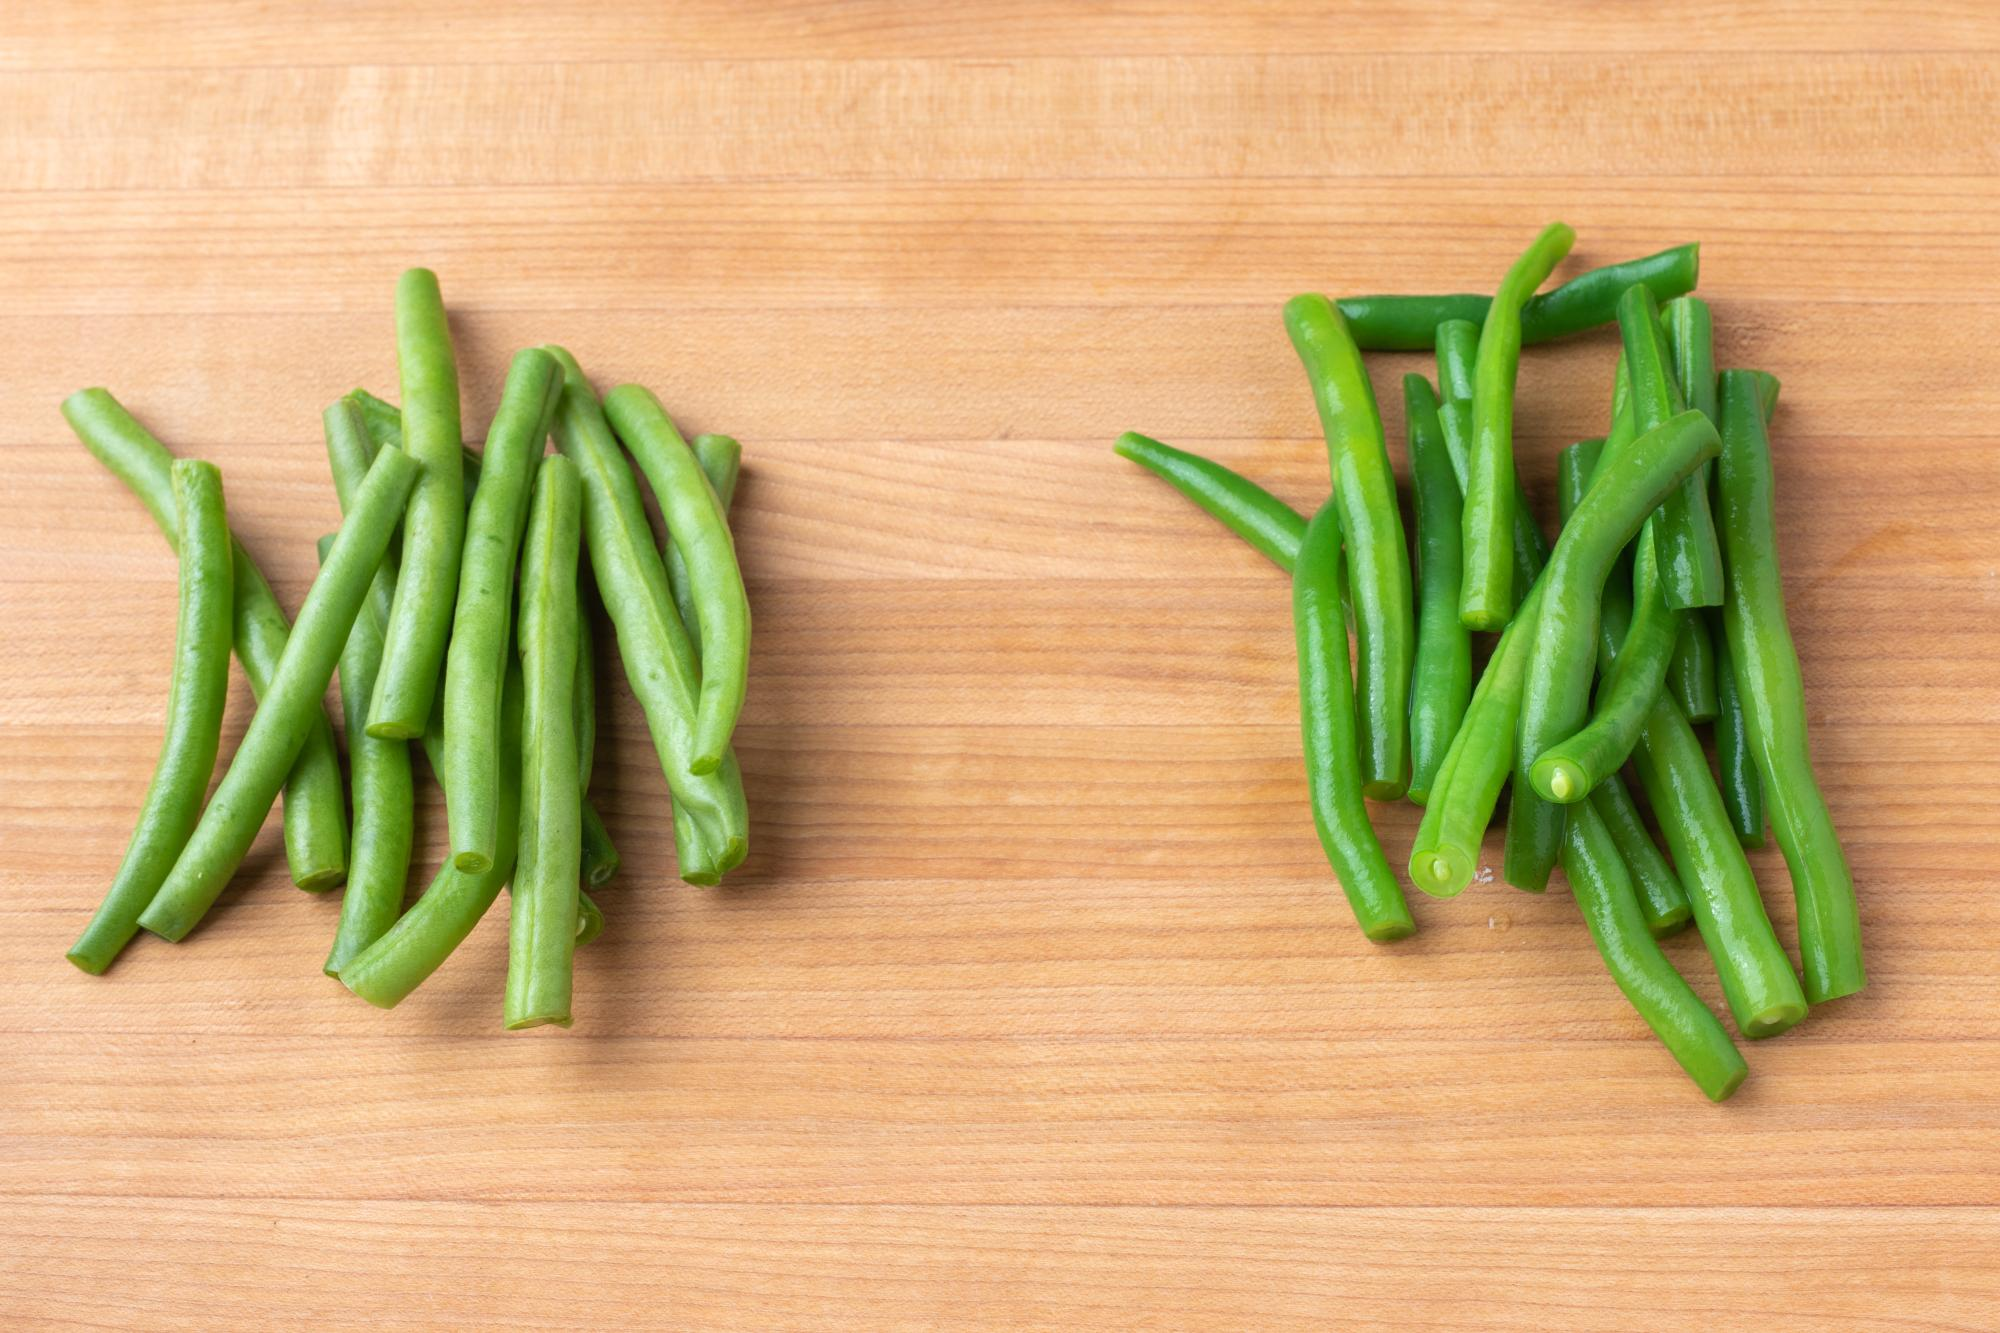 Unblanched vs. blanched green beans.